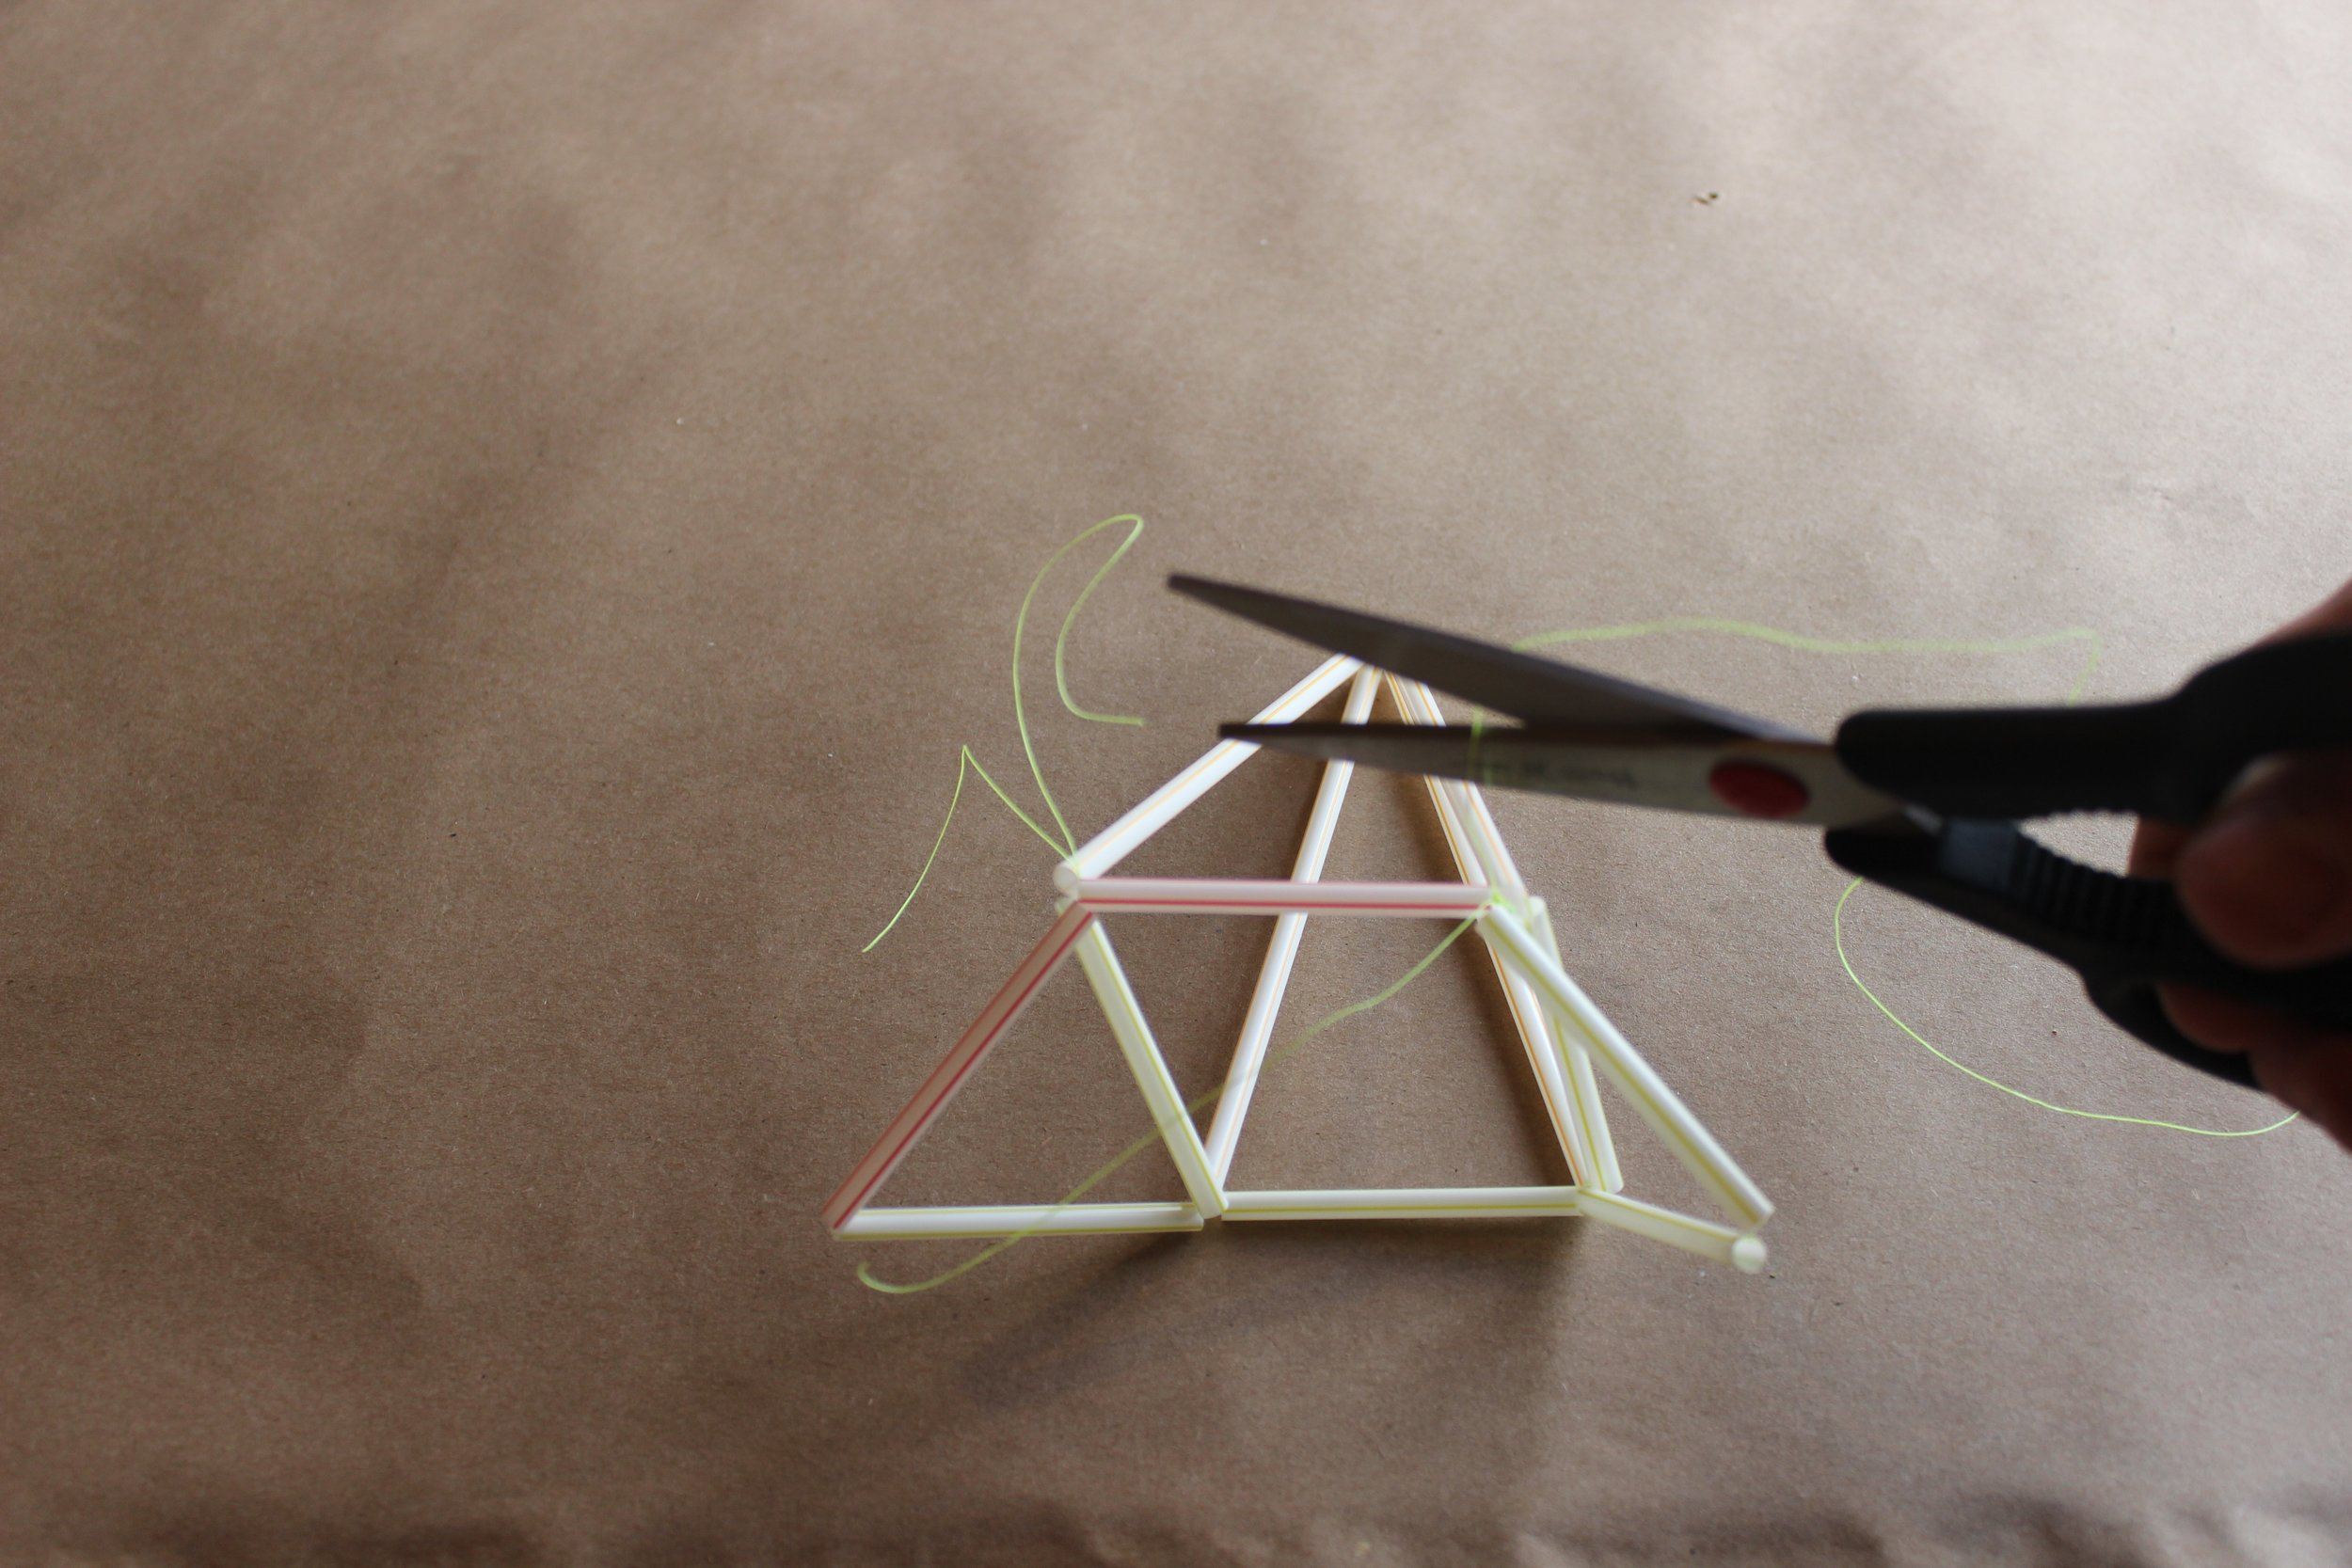 Step 10.) Cut off the excess string from all of the connections. Tie the two bottom triangles together with another piece of string.